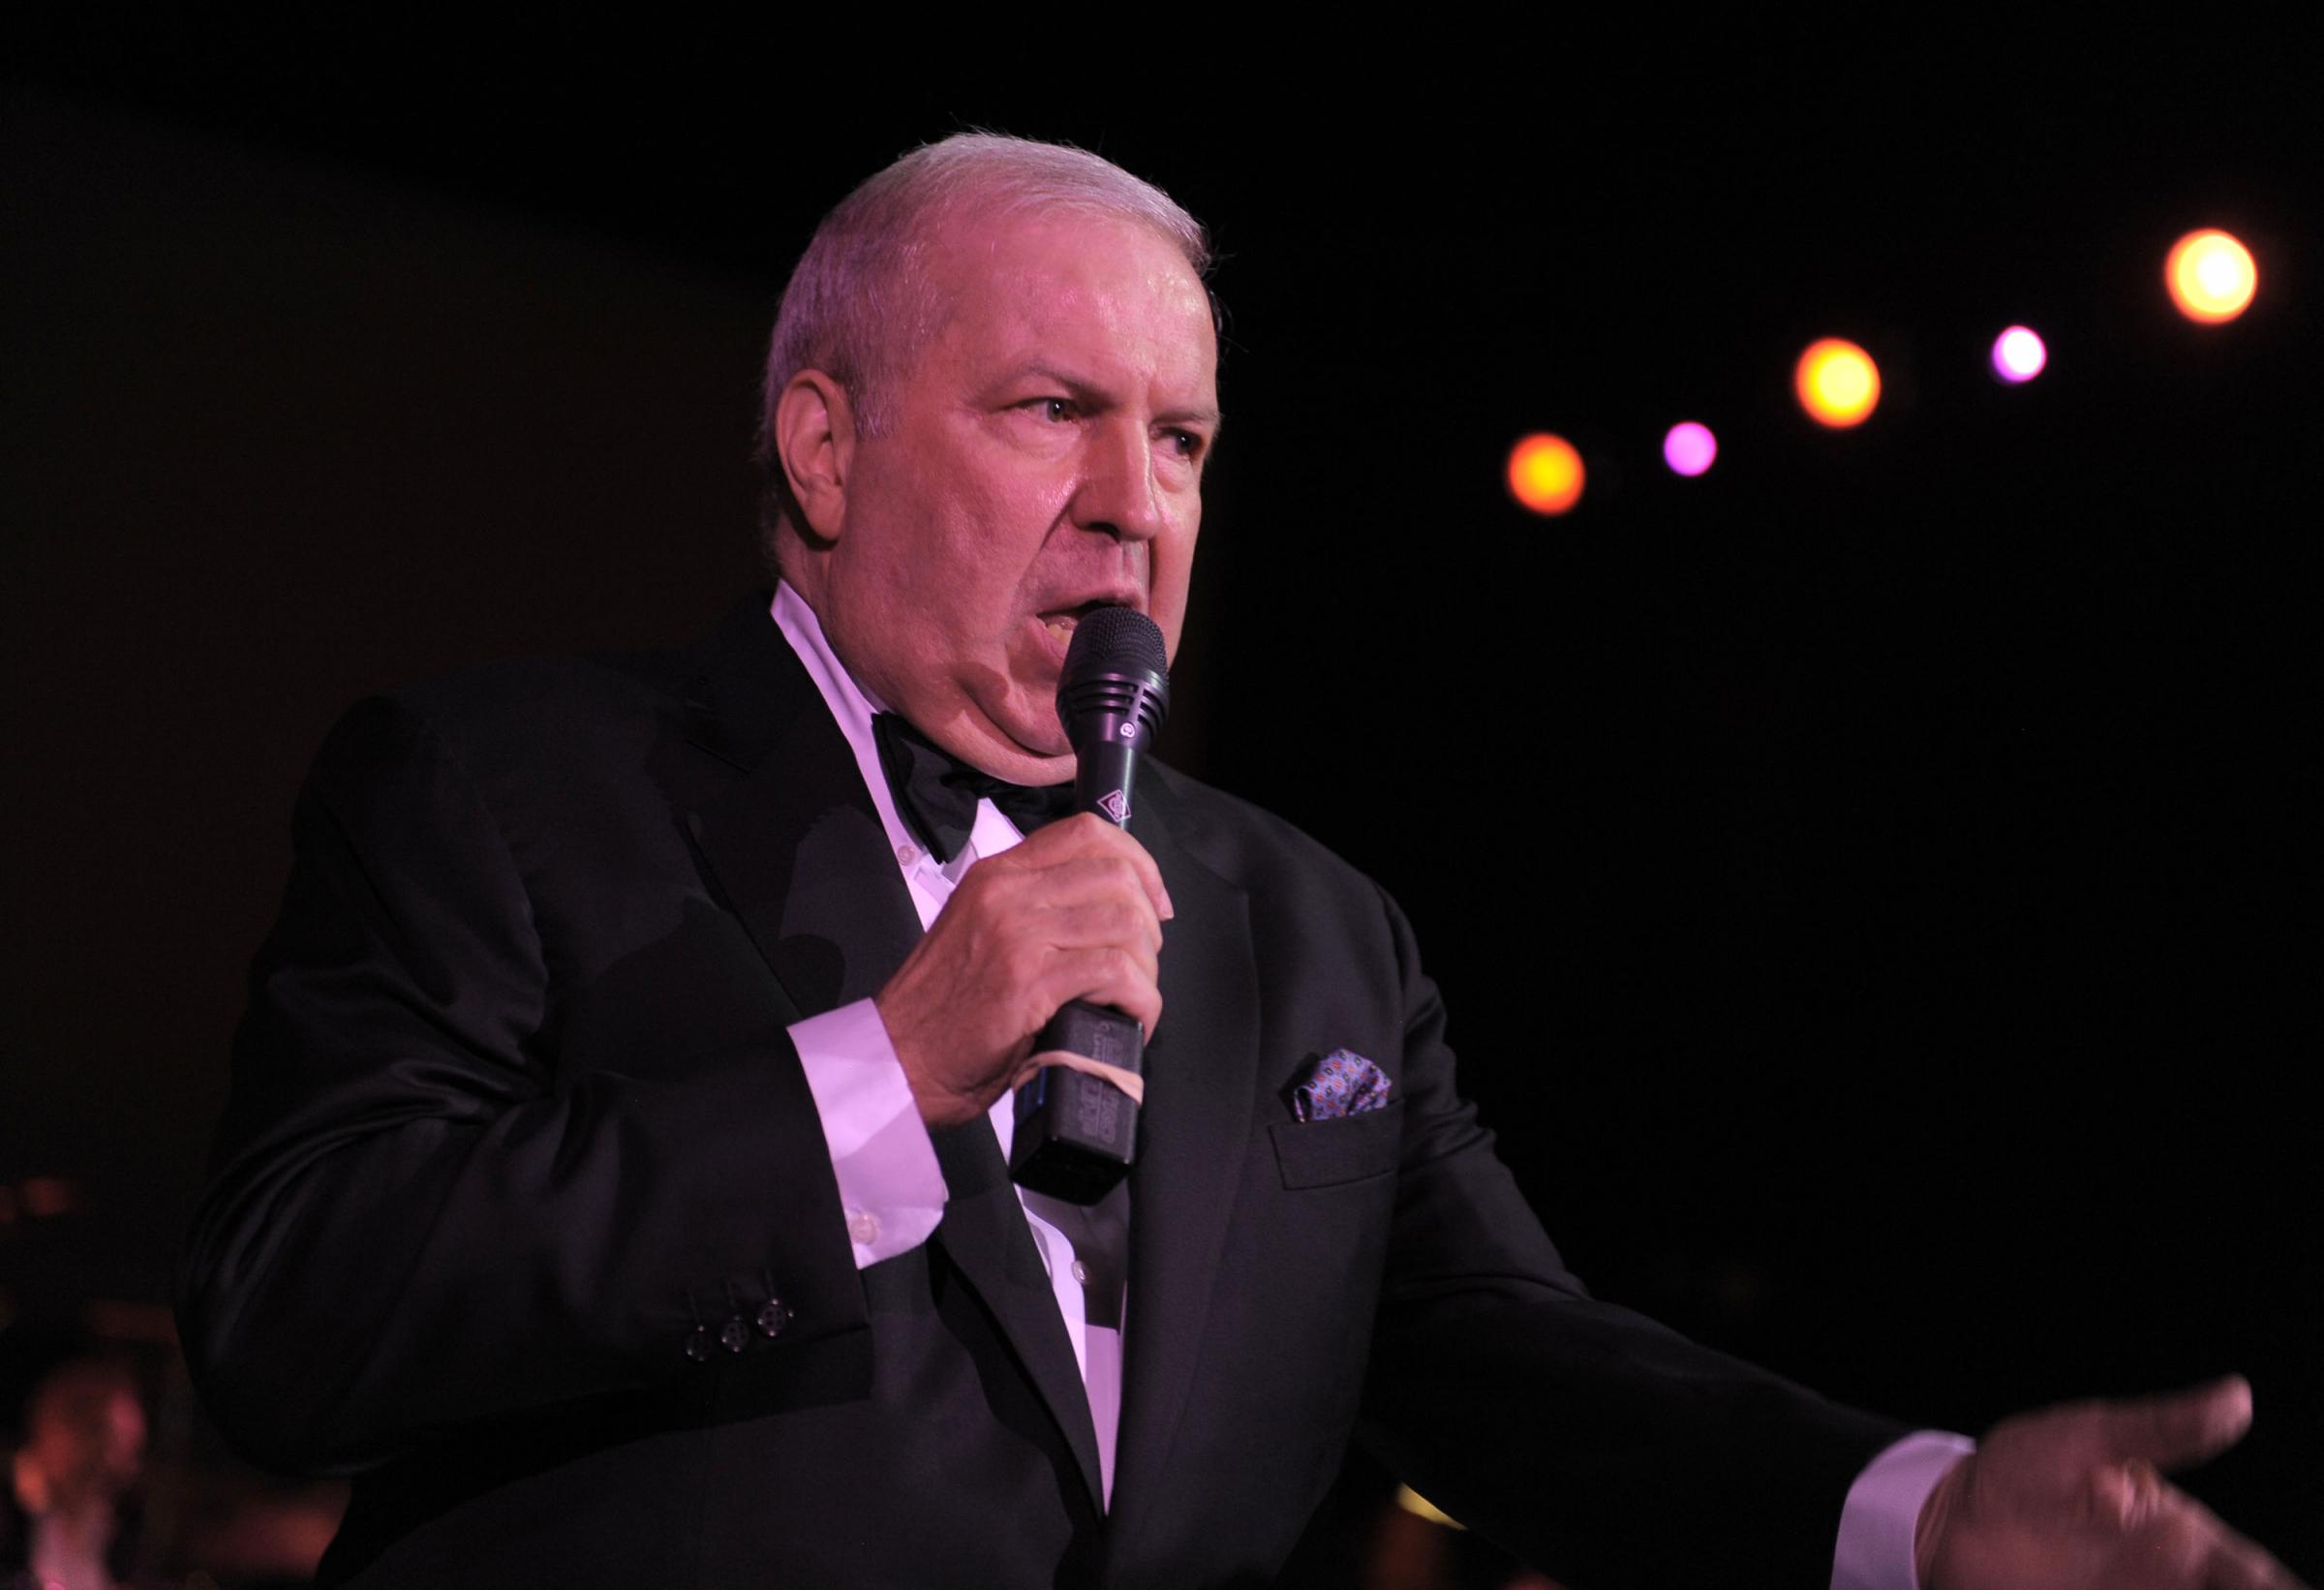 Frank_Sinatra_Jr_has_died_at_the_age_of_72